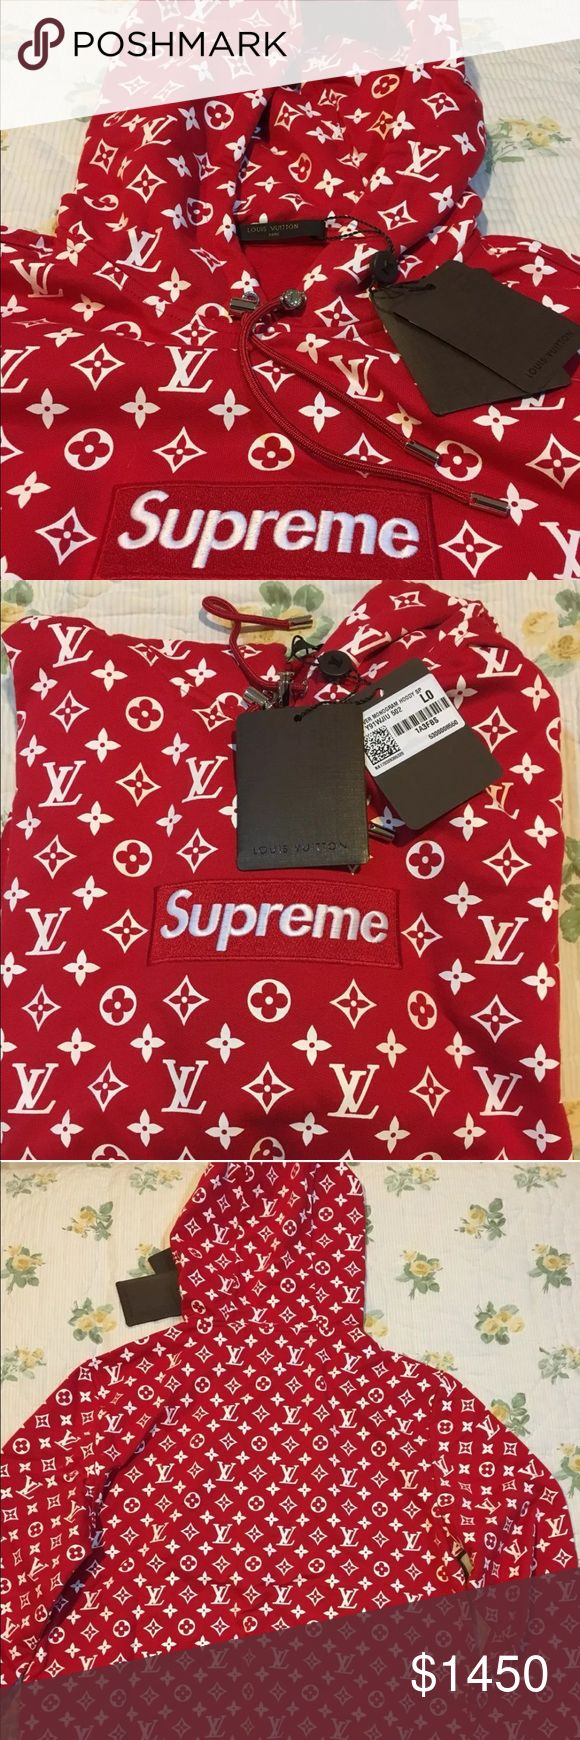 Supreme Louis Vuitton Hoodie 100% Authentic apparel , Tags, original Louis Vuitton box guaranteed Authentic, please text before buying, have more pics available , Supreme New York, guaranteed arrival. Ups Priority shipping , if interested text or call (248) 372-9303 Louis Vuitton Sweaters